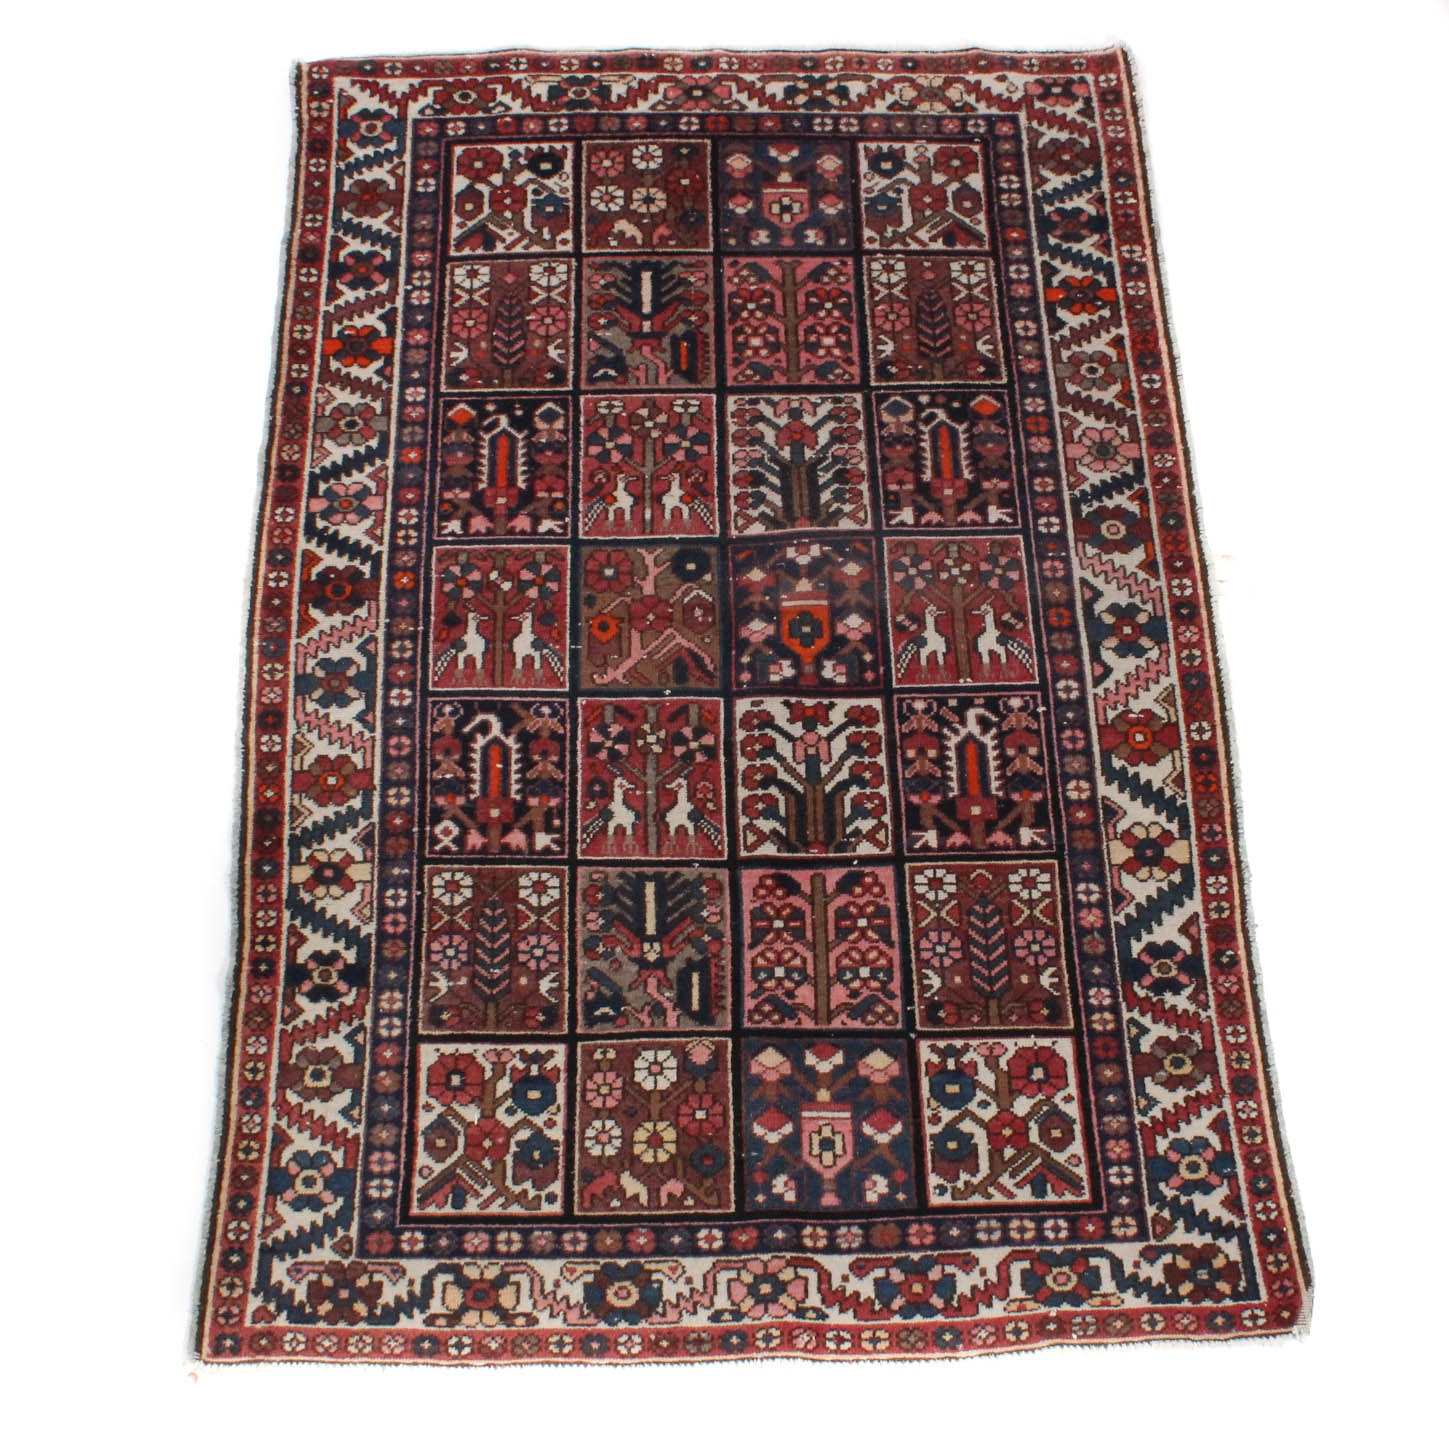 Antique Hand-Knotted Antique Persian Bakhtiari Rug